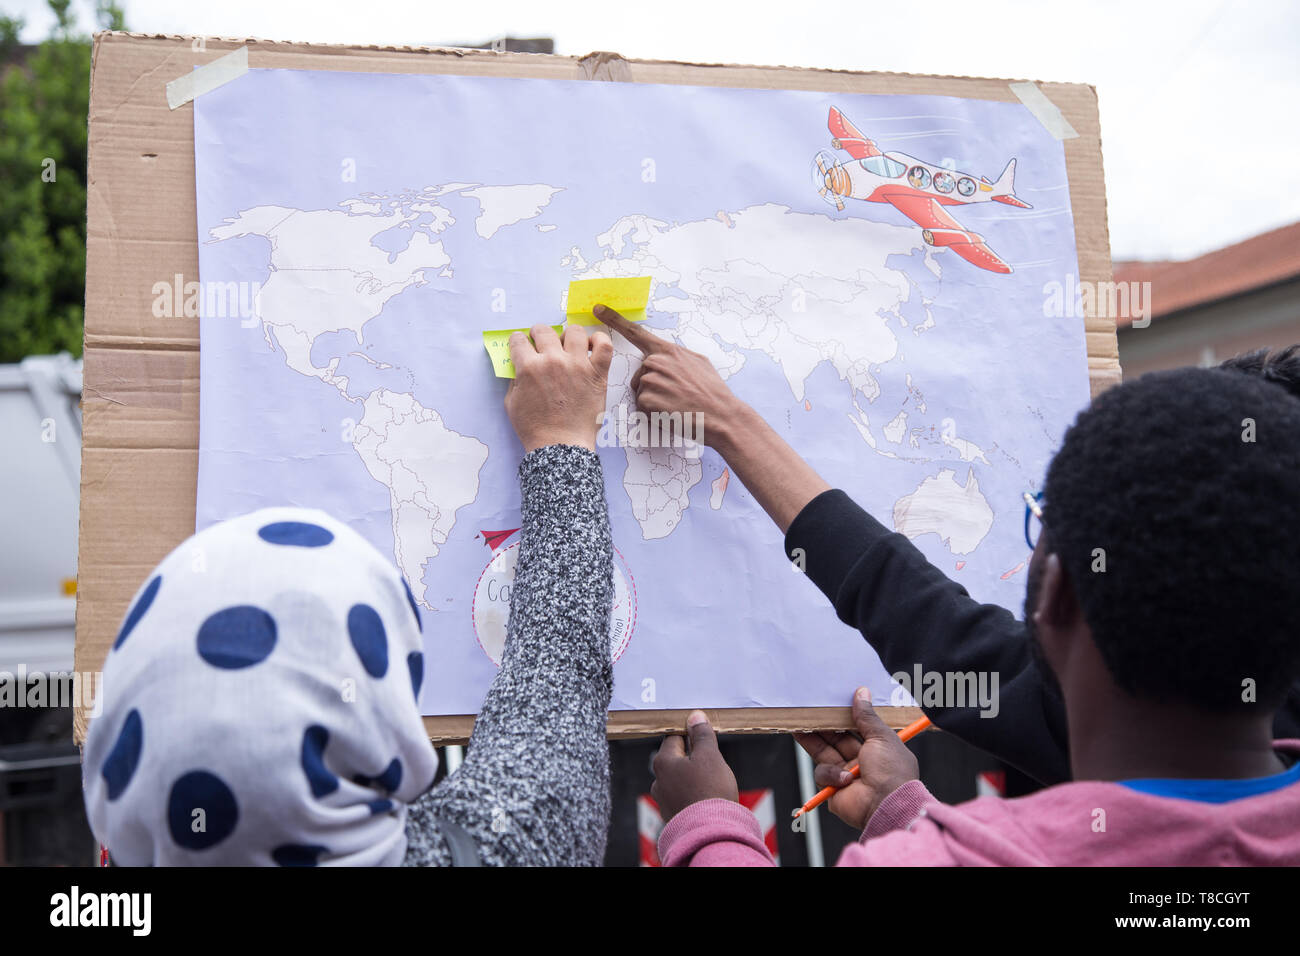 Roma, Italy. 11th May, 2019. A panel with the territorial distribution of the nationalities of the people asking for food A project organized by the Eco dalle Città association with the sponsorship of the I municipality to the new Esquilino market in Rome Credit: Matteo Nardone/Pacific Press/Alamy Live News - Stock Image